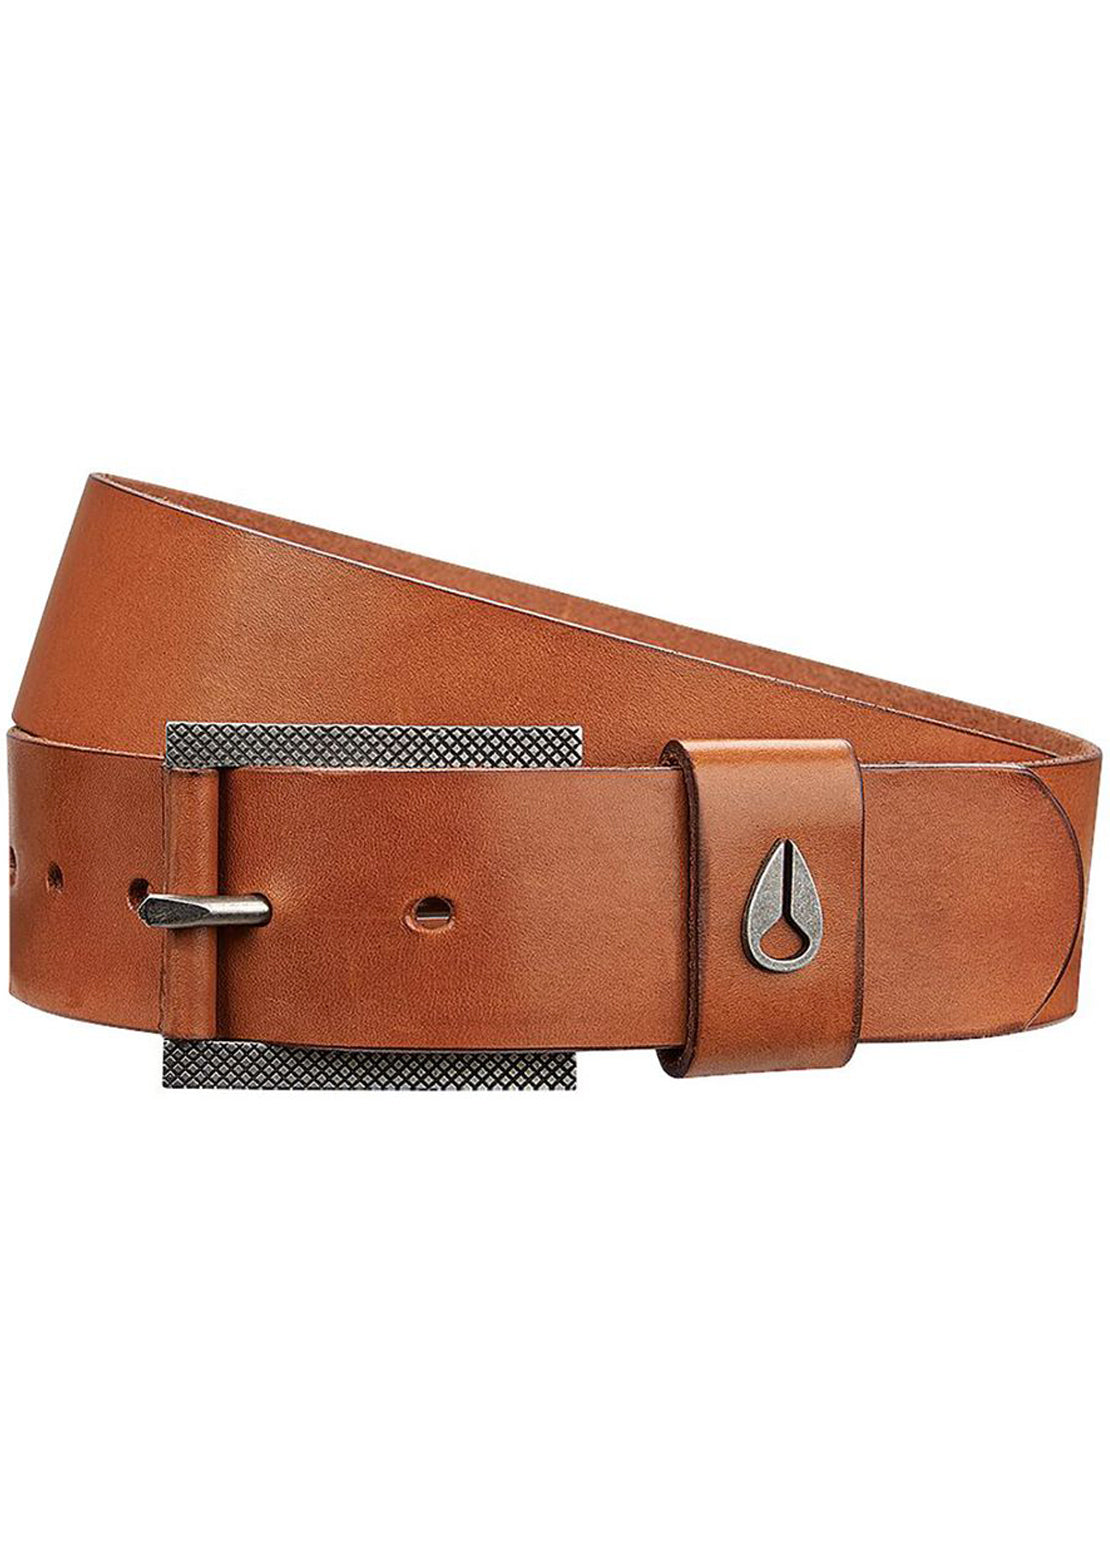 Nixon Men's Americana II Belt Saddle